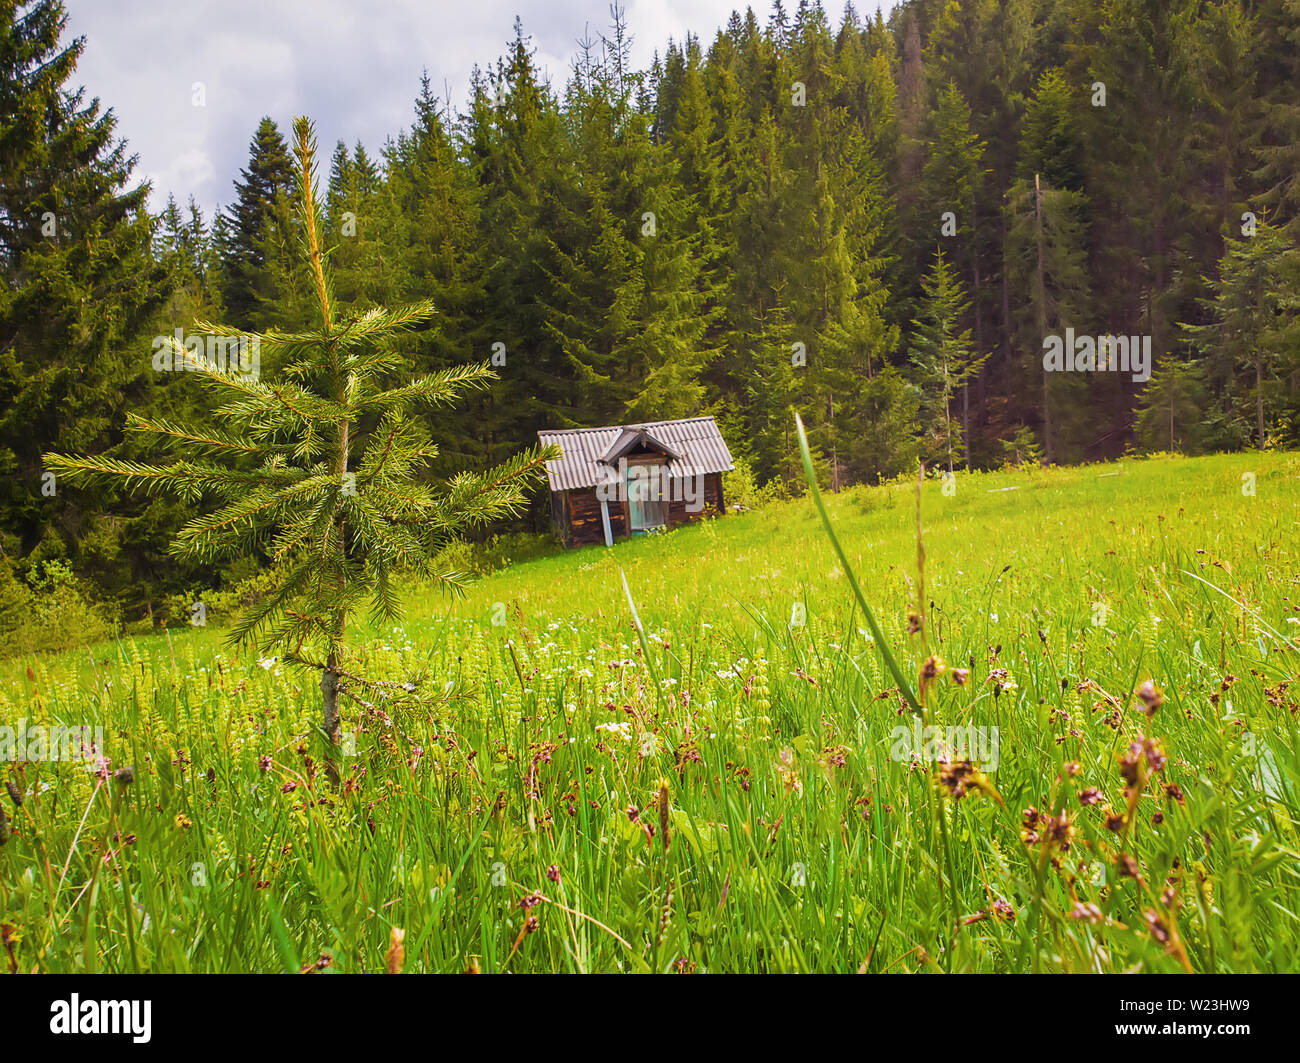 Close up of a little fir tree on the green grass field in front of a wooden cottage surrounded by coniferous forests. Picturesque spring idyllic scene - Stock Image